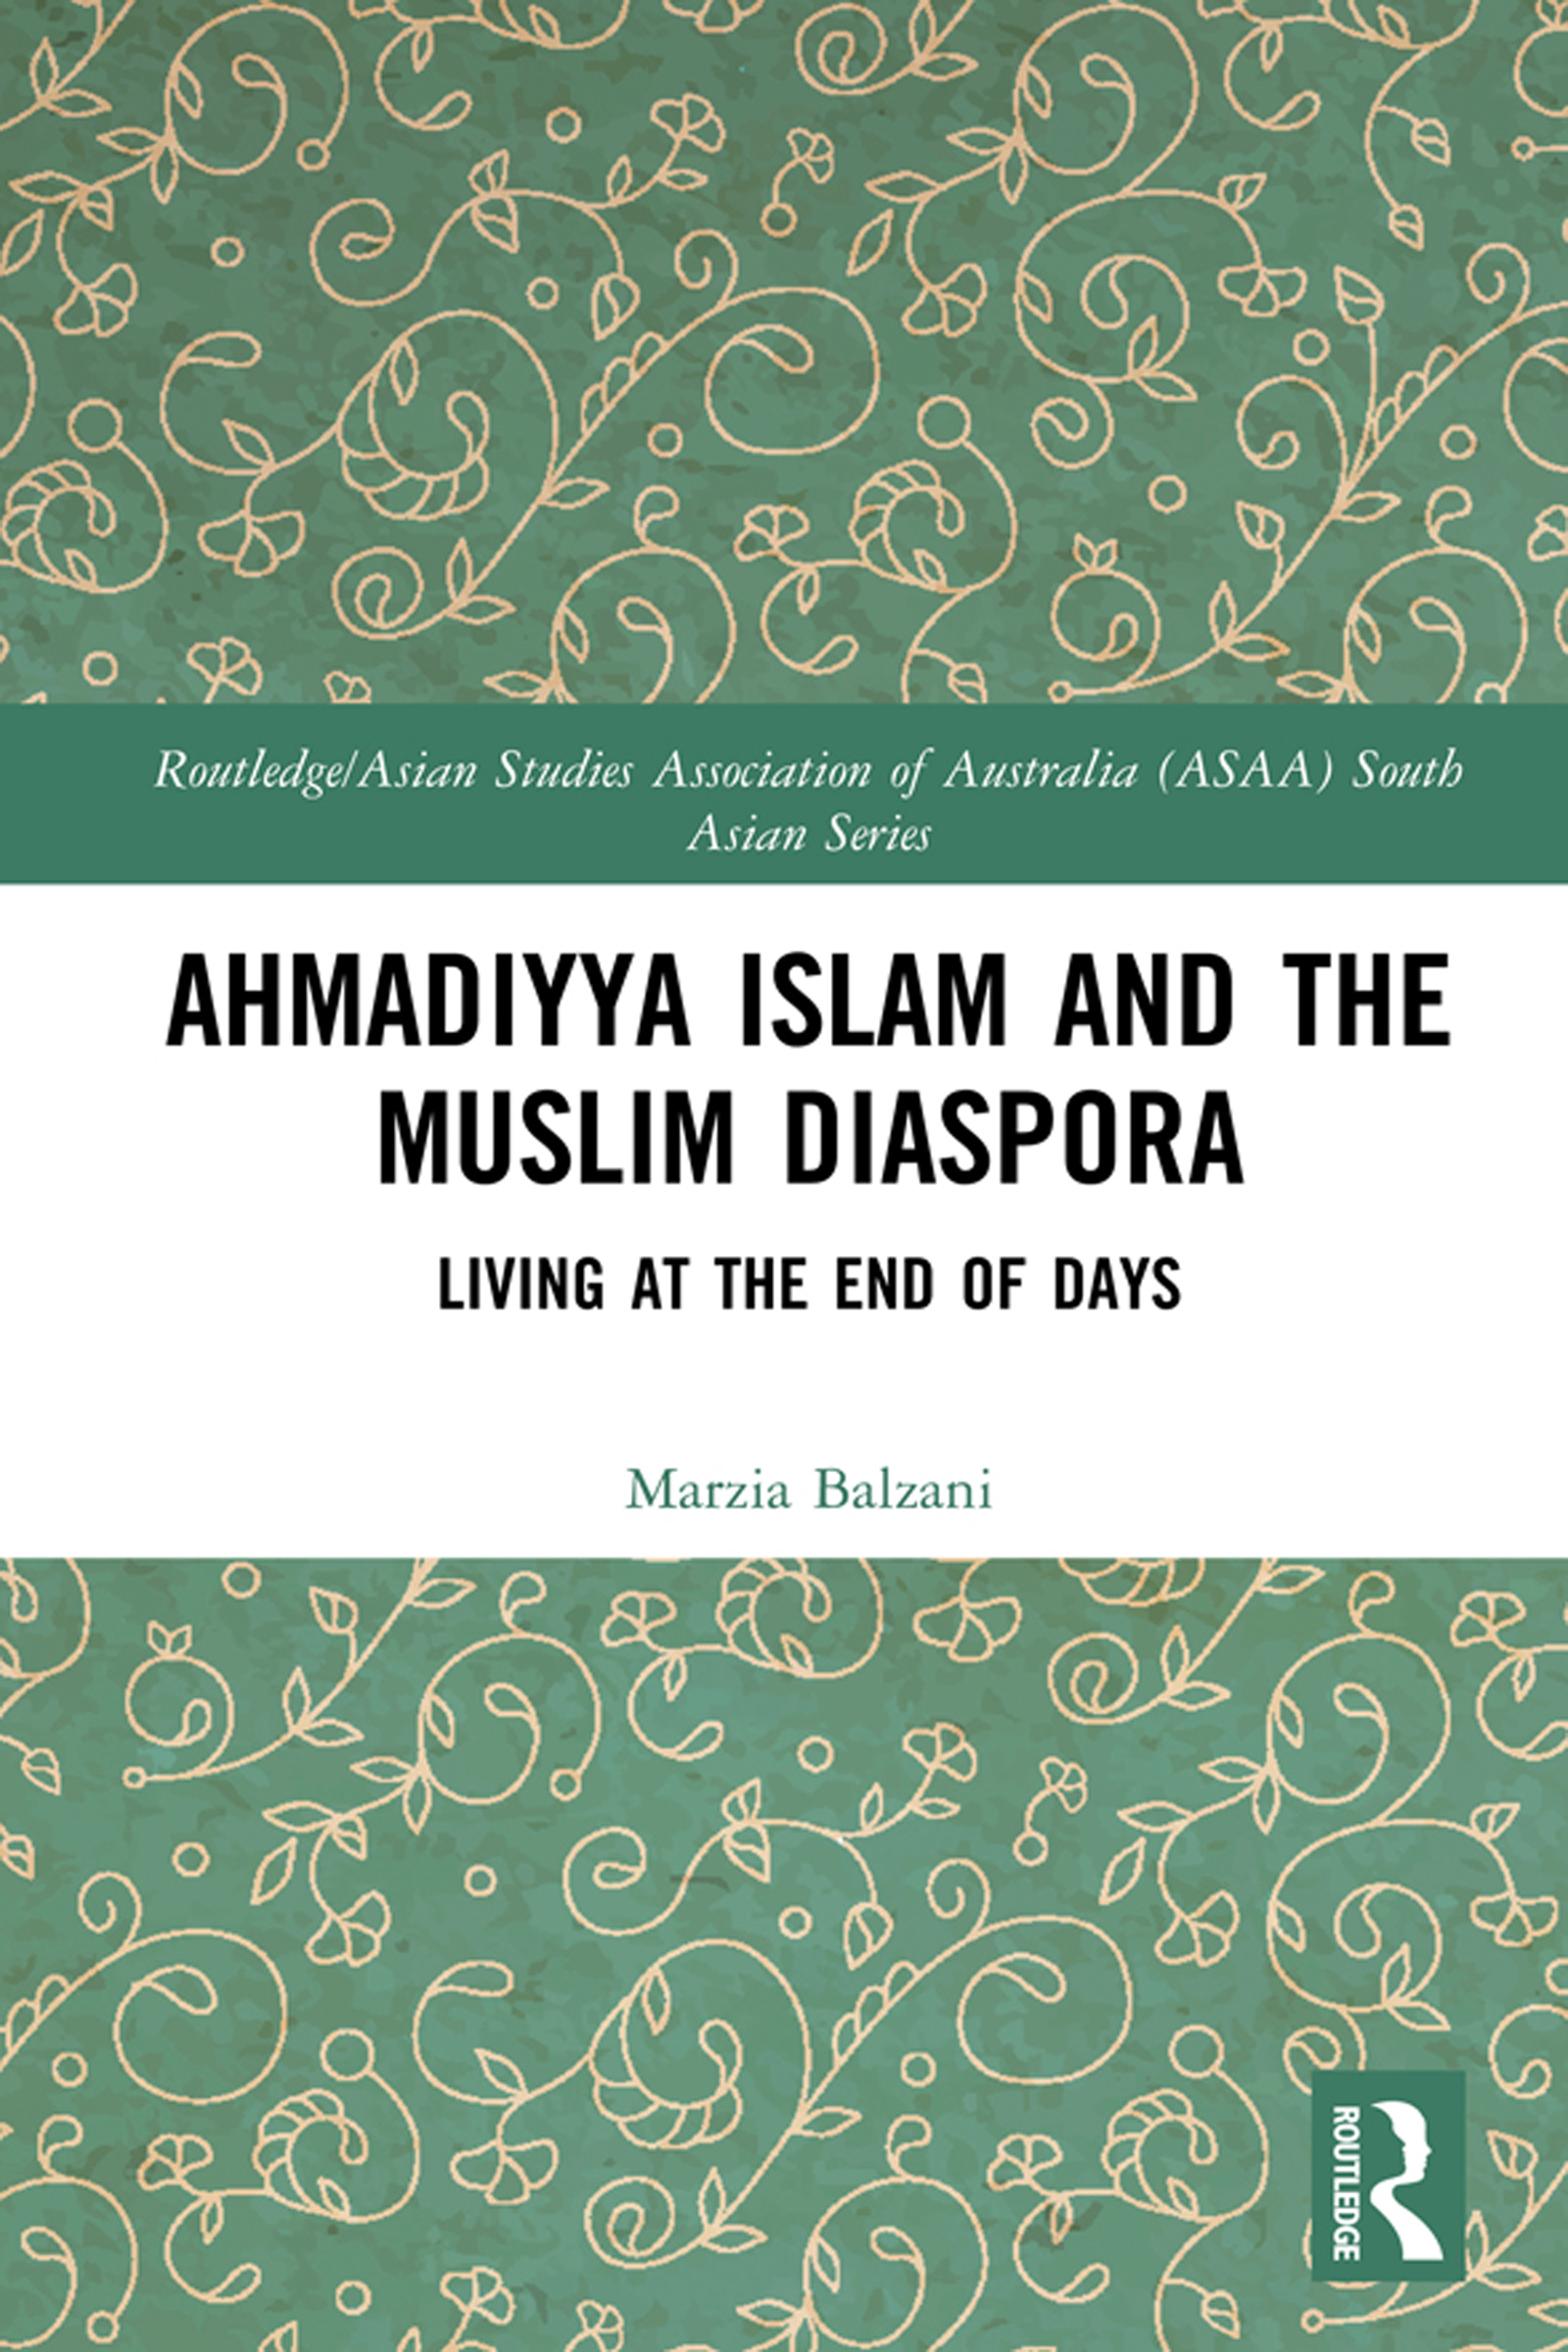 Ahmadiyya Islam and the Muslim Diaspora: Living at the End of Days book cover